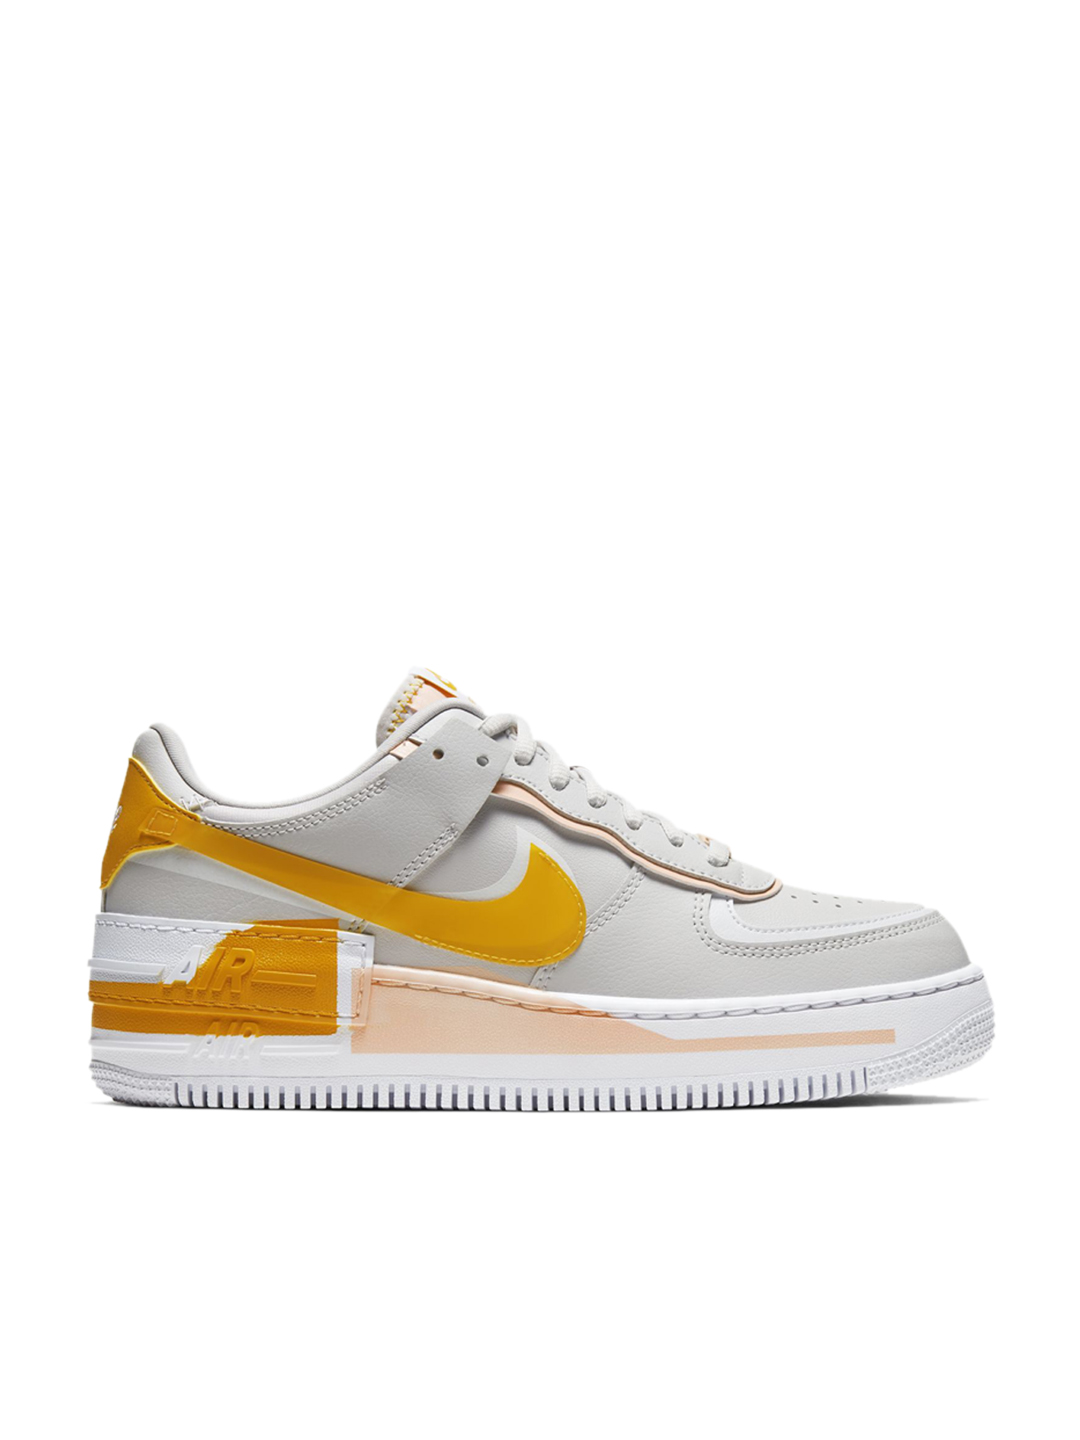 Nike Women S Air Force 1 Shadow Vast Grey Sneakers From Nike At Best Prices On Tata Cliq Expanding on their lineup is an upcoming color options that comes dressed in a mix of vast grey, pollen rise, washed coral, and white. nike